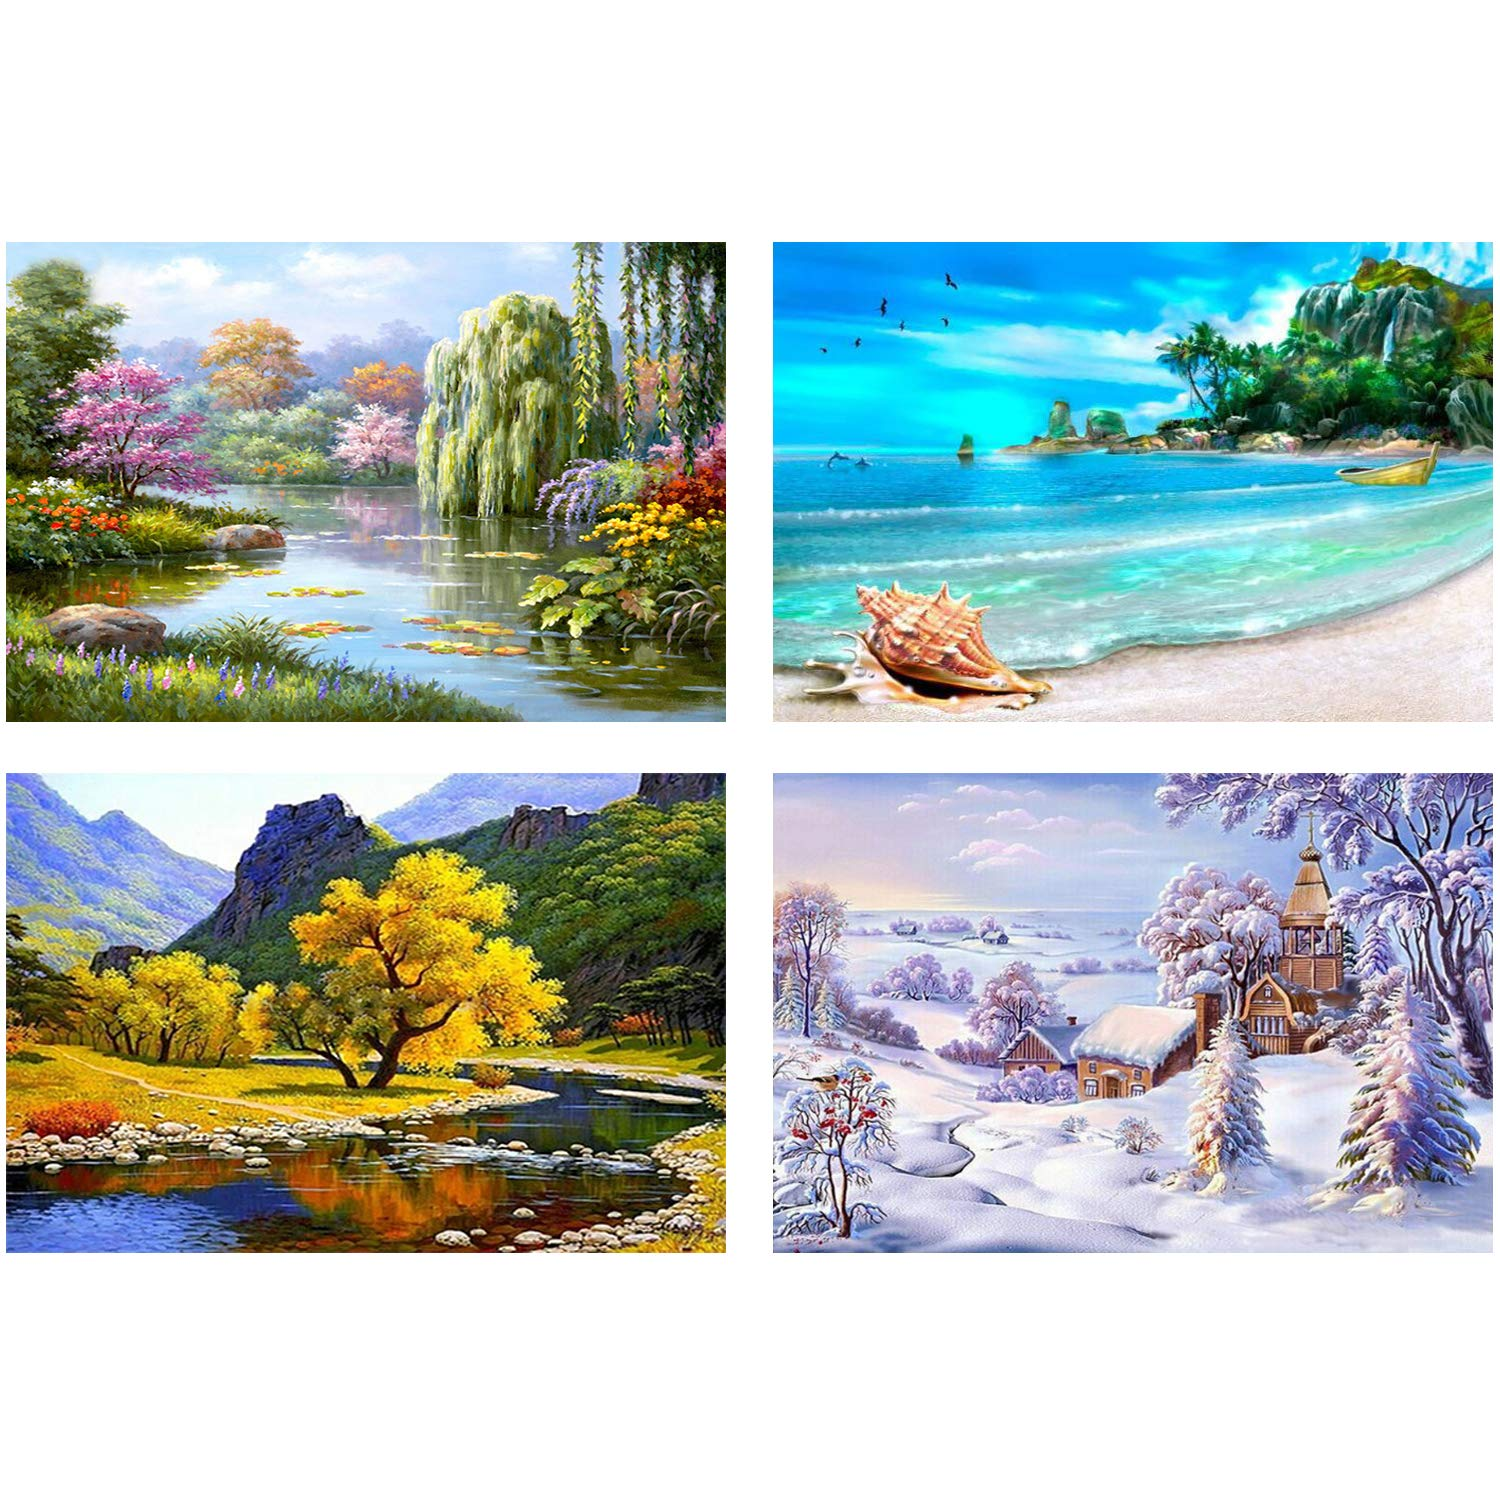 4 Pack 5D DIY Diamond Painting by Number Kits Full Drill Four Seasons Landscape Cross Stitch Rhinestone Embroidery Paintings Four Seasons Pictures for Home Decoration